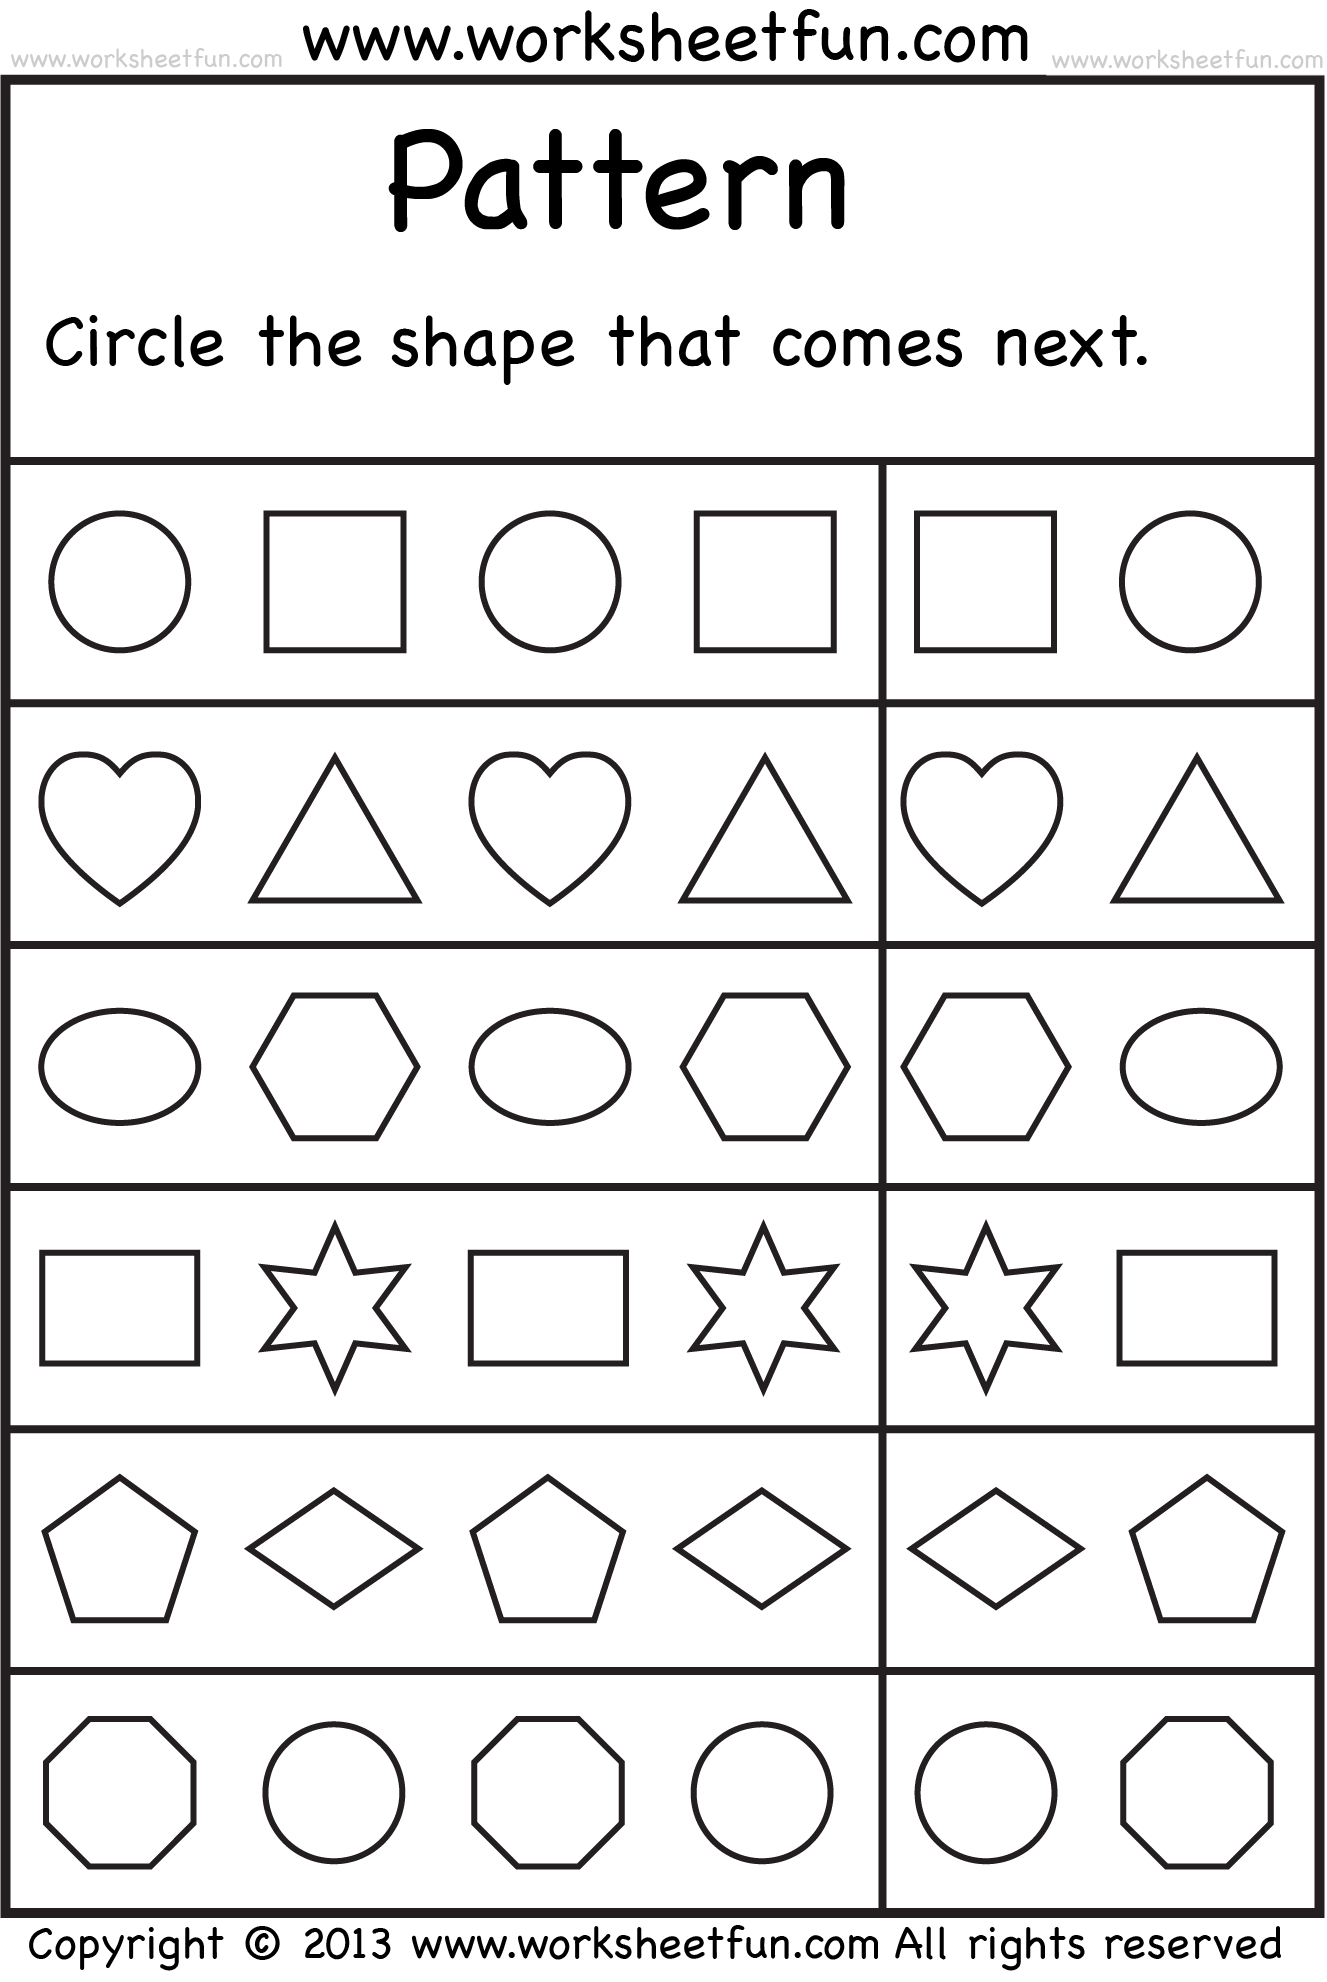 Aldiablosus  Unusual  Images About School Worksheets On Pinterest  Number Words  With Heavenly  Images About School Worksheets On Pinterest  Number Words Alphabet Worksheets And Free Printable Kindergarten Worksheets With Charming Obtuse Acute And Right Angles Worksheet Also Adding Numbers With Regrouping Worksheets In Addition Esl Calendar Worksheets And Free Pronoun Worksheet As Well As Shapes Worksheets Kids Additionally Multiplication Table Worksheet  From Pinterestcom With Aldiablosus  Heavenly  Images About School Worksheets On Pinterest  Number Words  With Charming  Images About School Worksheets On Pinterest  Number Words Alphabet Worksheets And Free Printable Kindergarten Worksheets And Unusual Obtuse Acute And Right Angles Worksheet Also Adding Numbers With Regrouping Worksheets In Addition Esl Calendar Worksheets From Pinterestcom